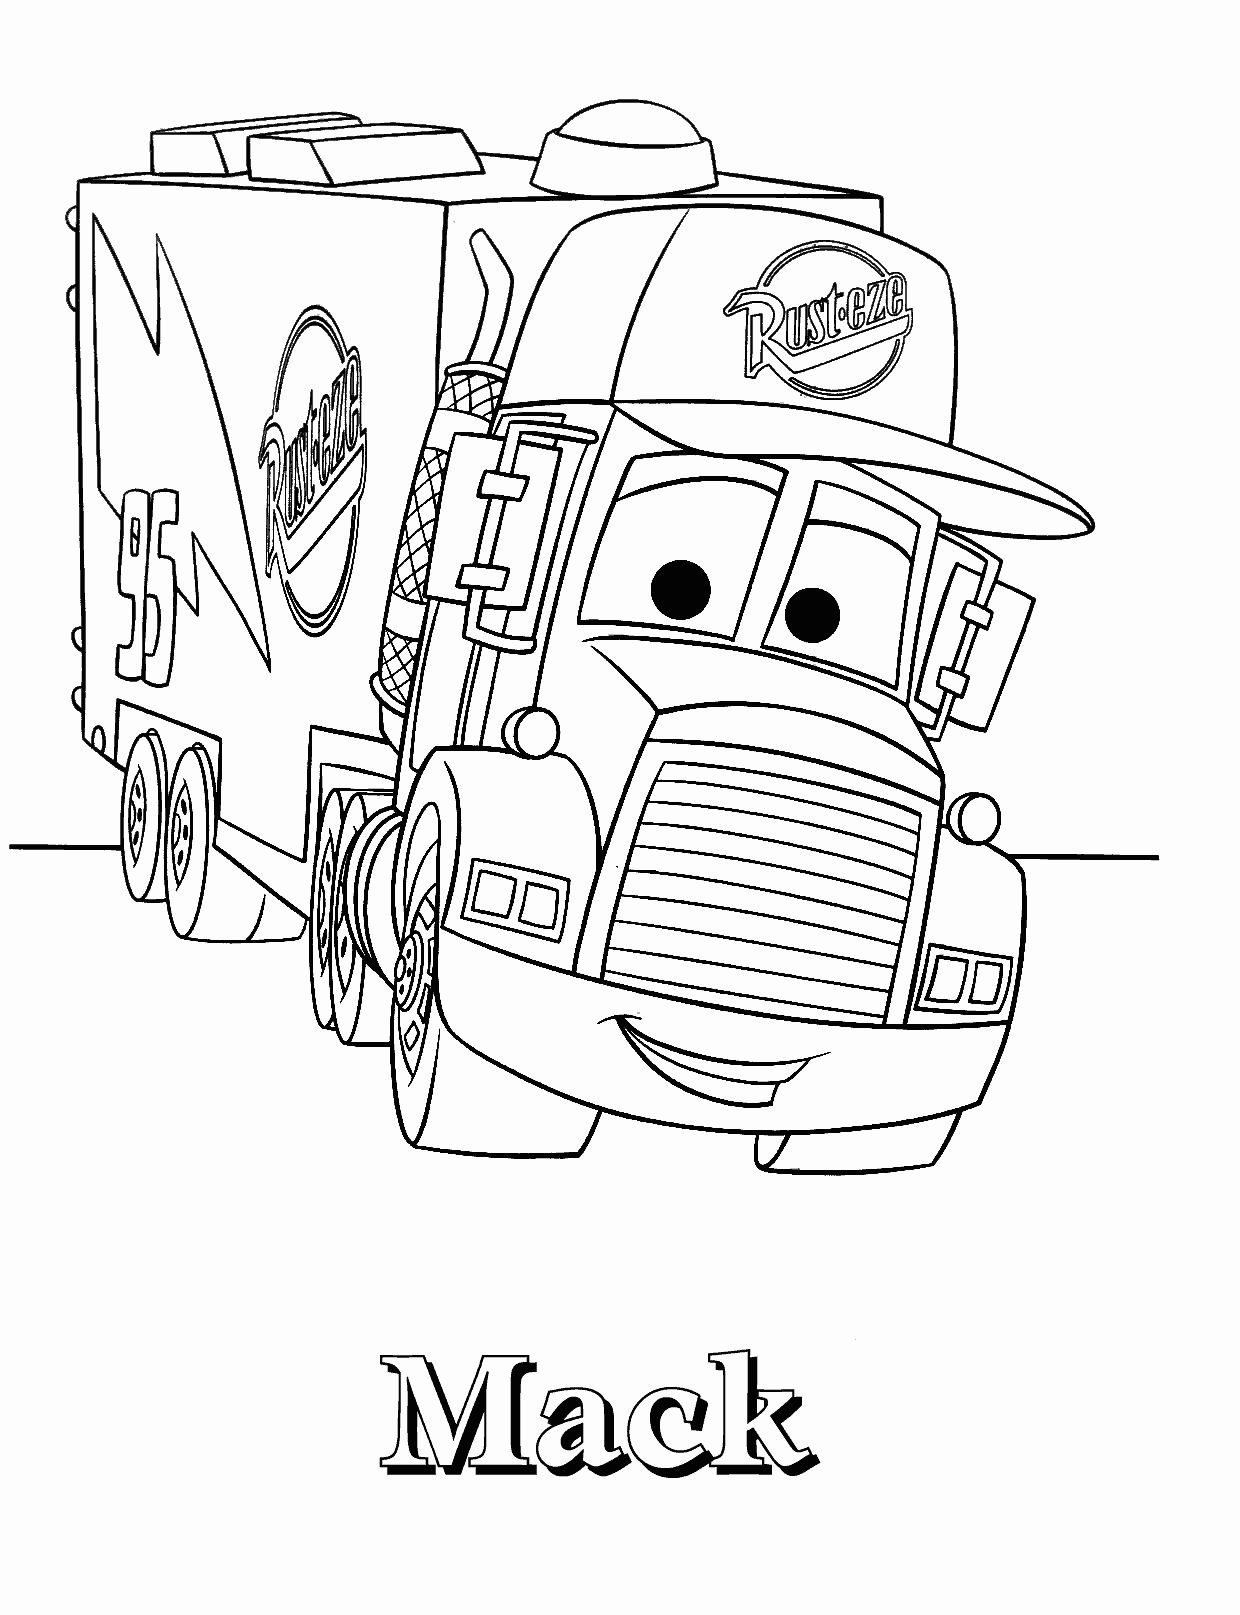 Lightning Mcqueen Coloring Pages Printable Elegant Printable Lightning Mcqueen Coloring Pages Fr Cars Coloring Pages Disney Coloring Pages Truck Coloring Pages